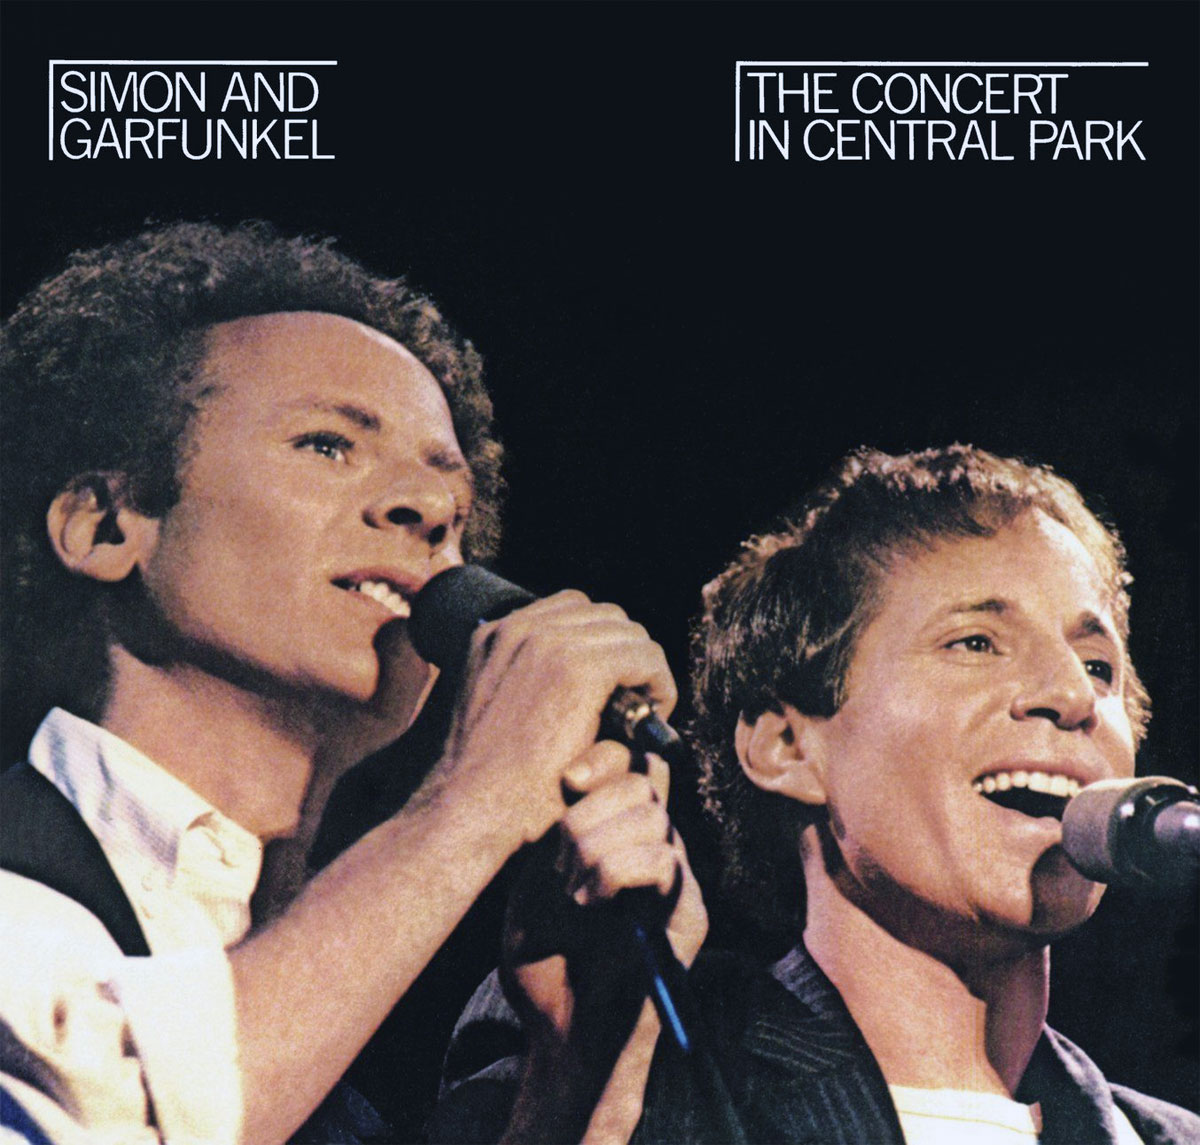 Simon e Garfunkel - The Concert in Central Park - copertina disco